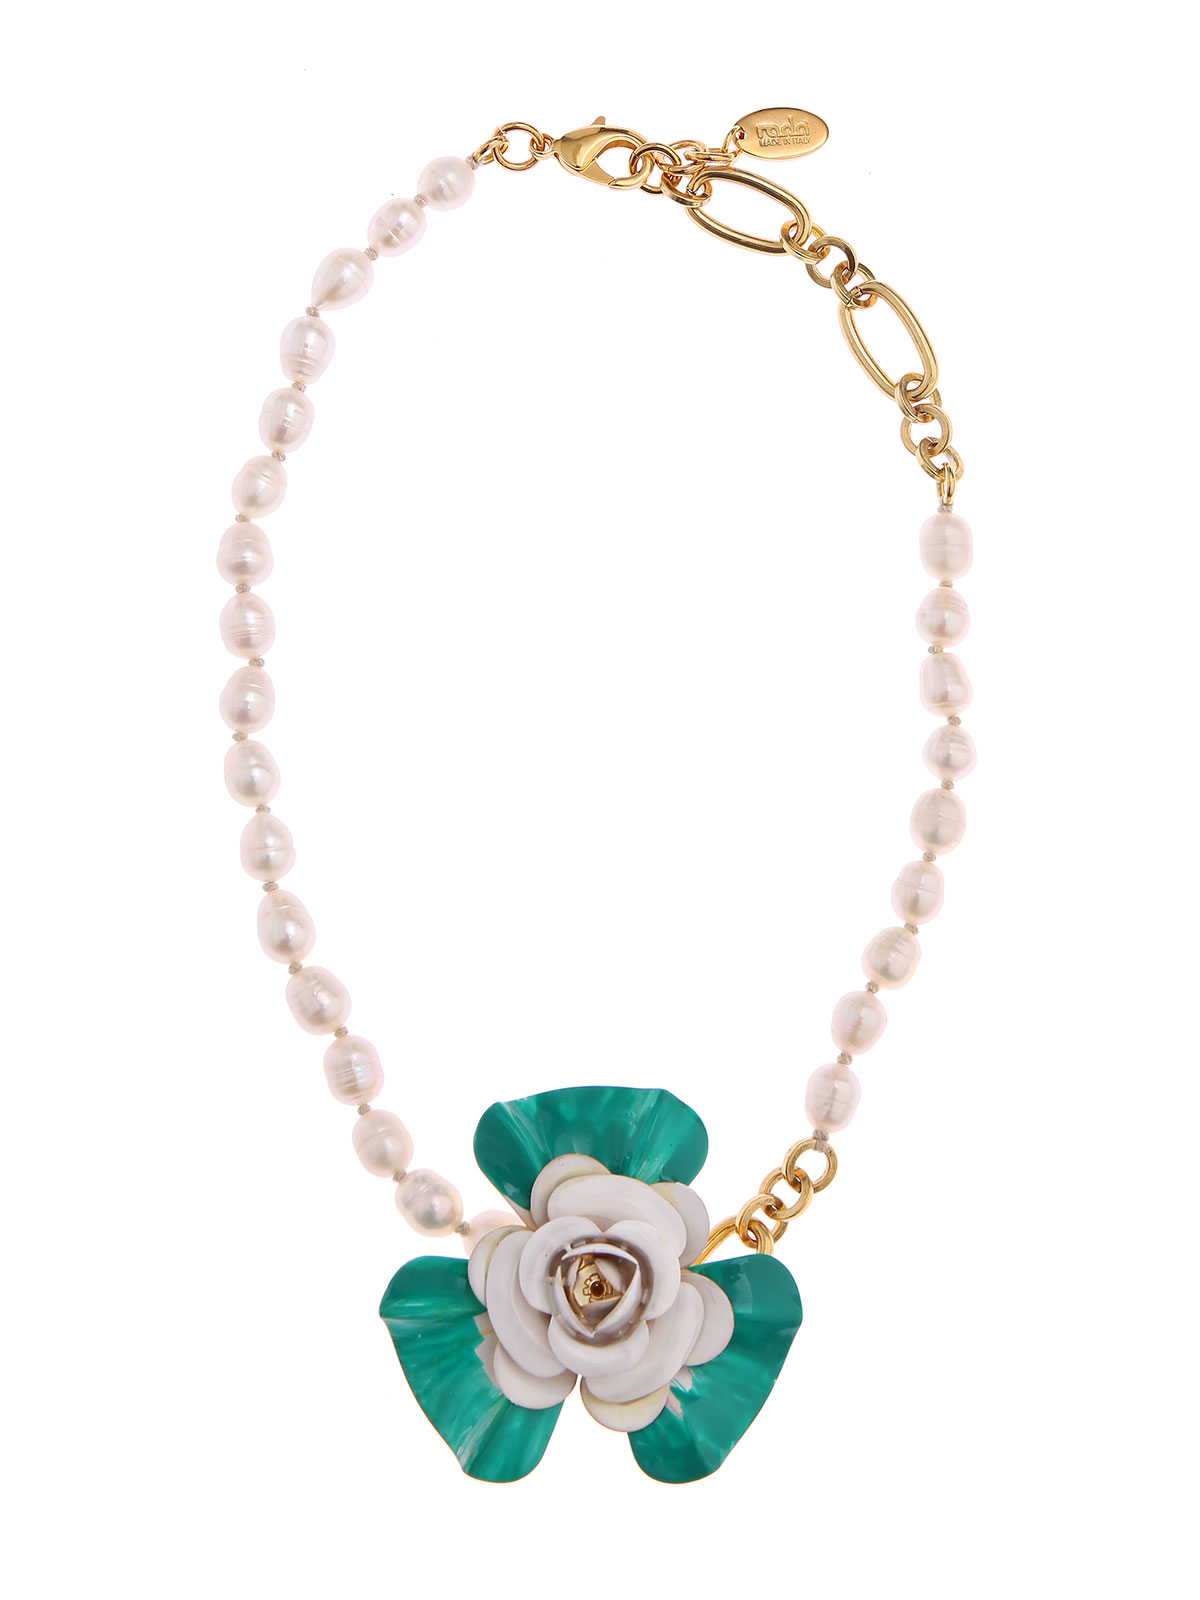 Necklace with flower and pearls